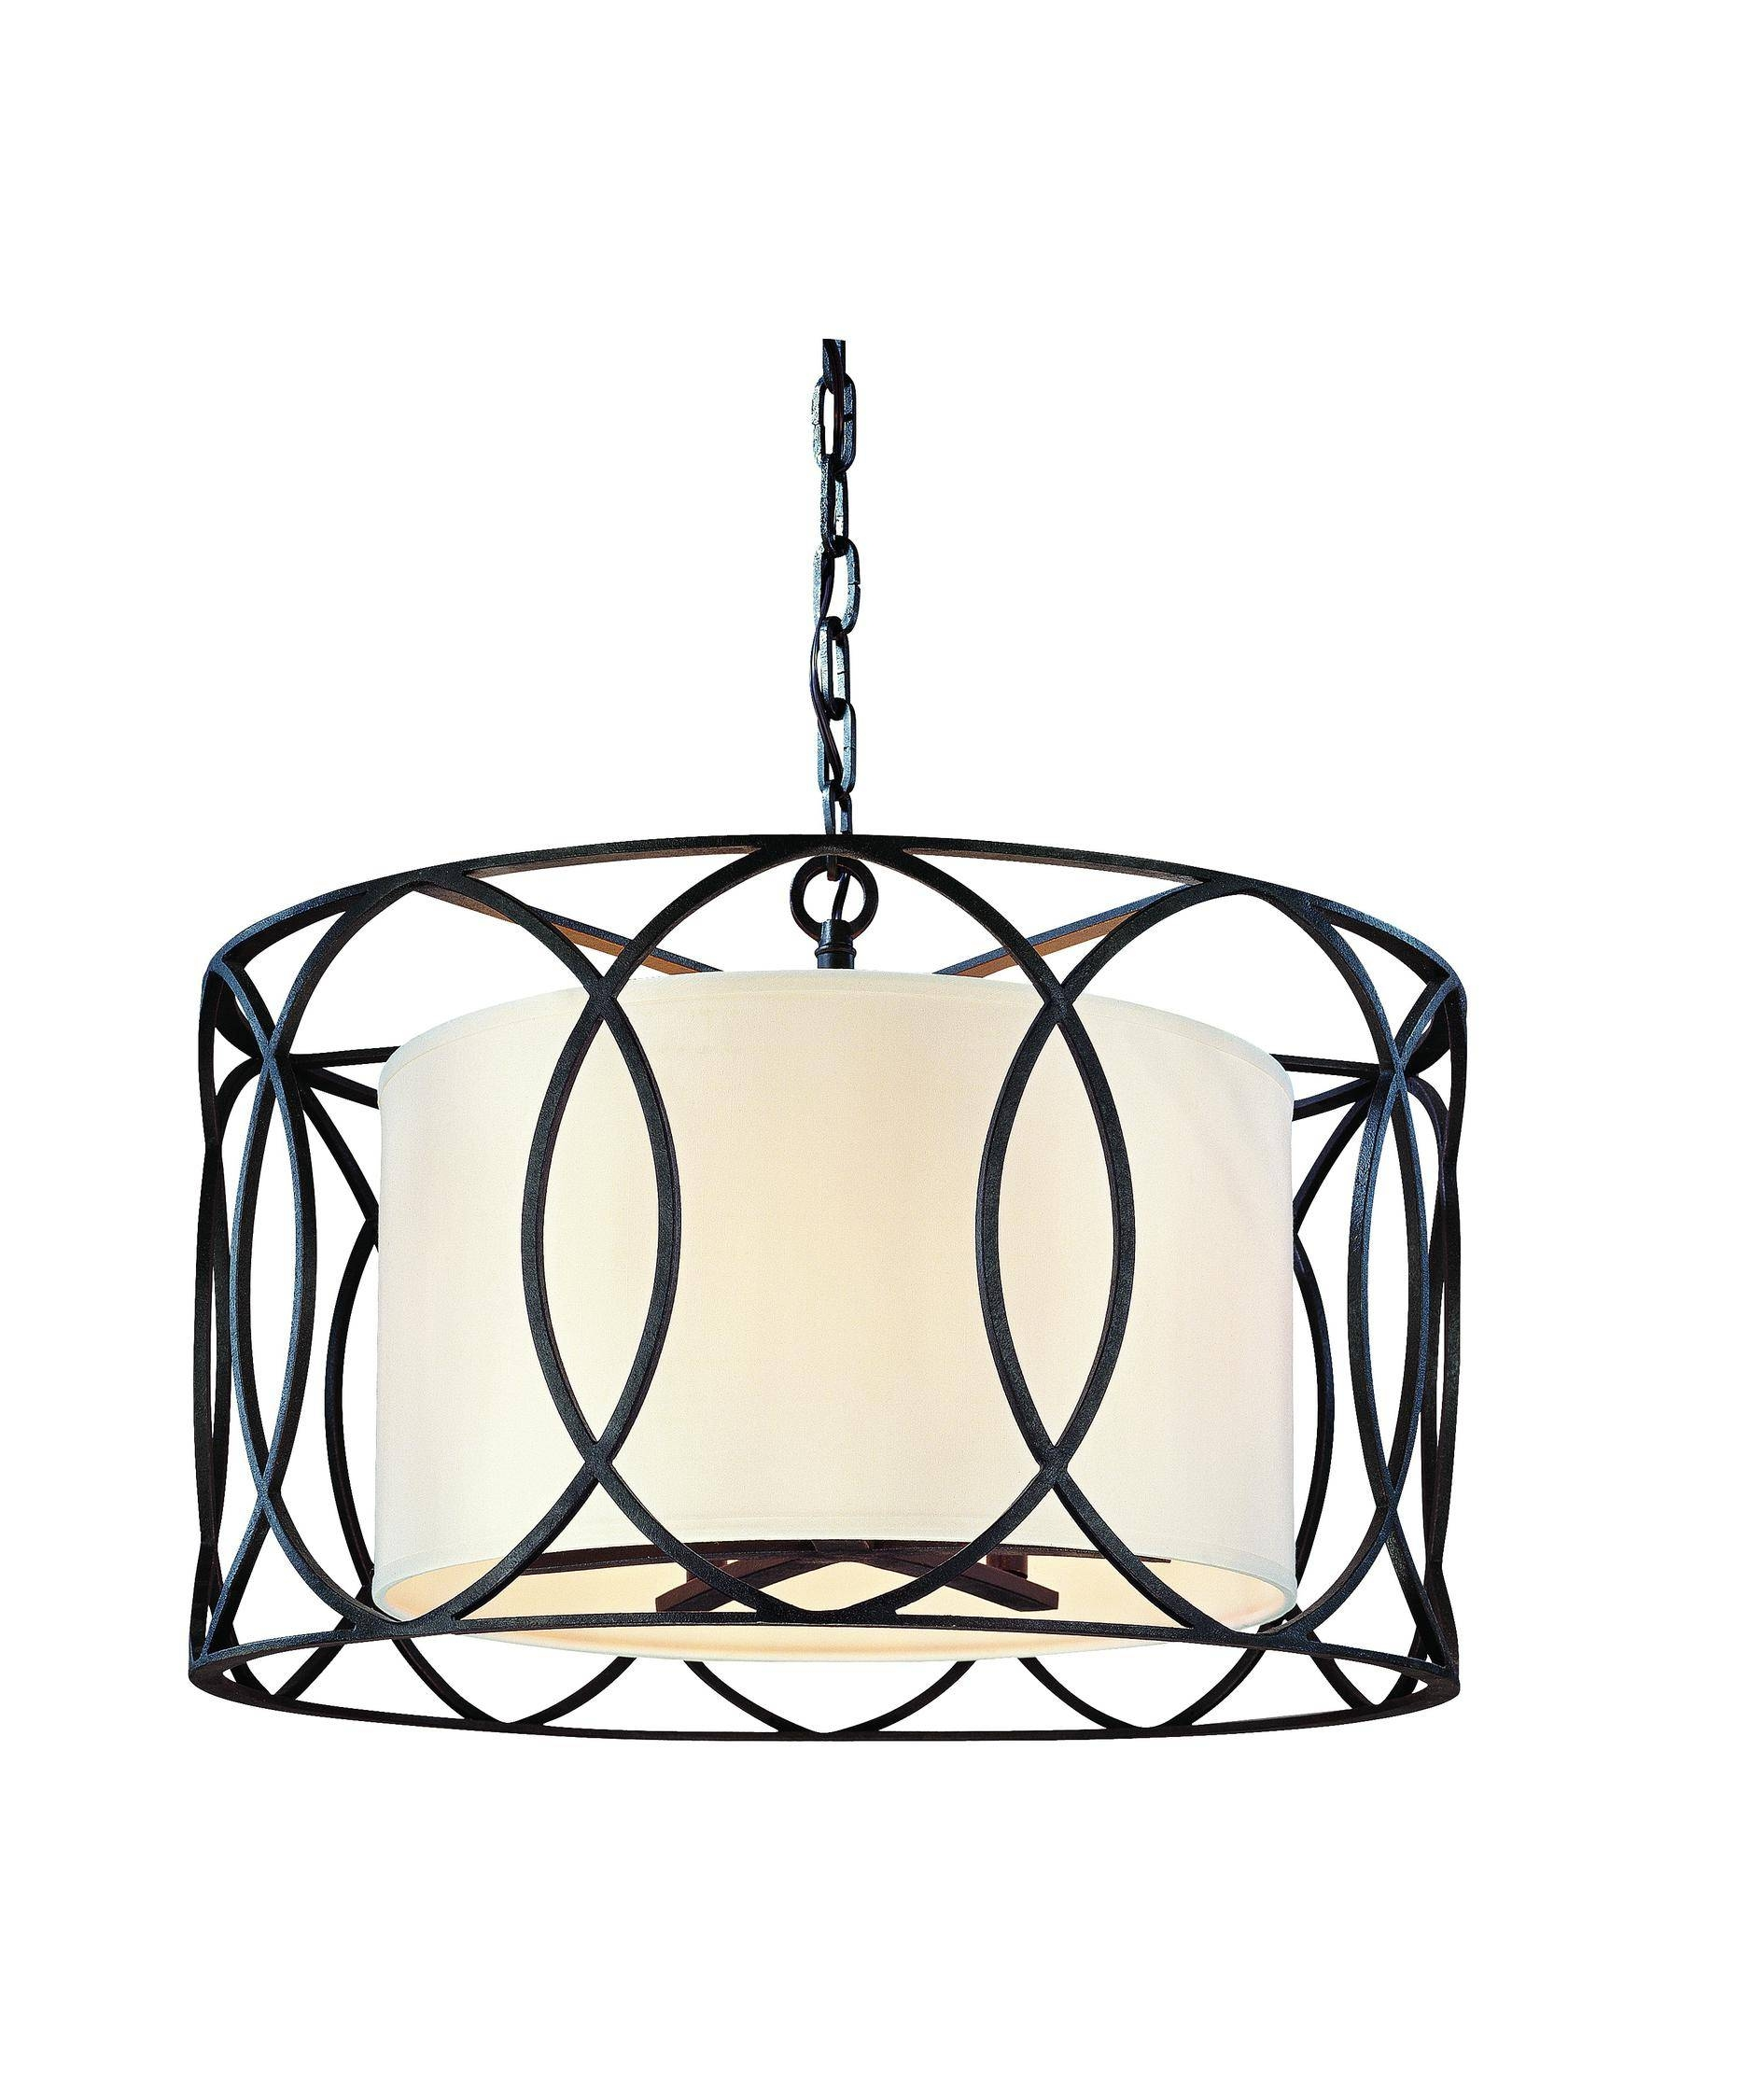 Troy Lighting F1285 Sausalito 25 Inch Wide 5 Light Large Pendant With Regard To Sausalito Troy Lighting (View 7 of 15)